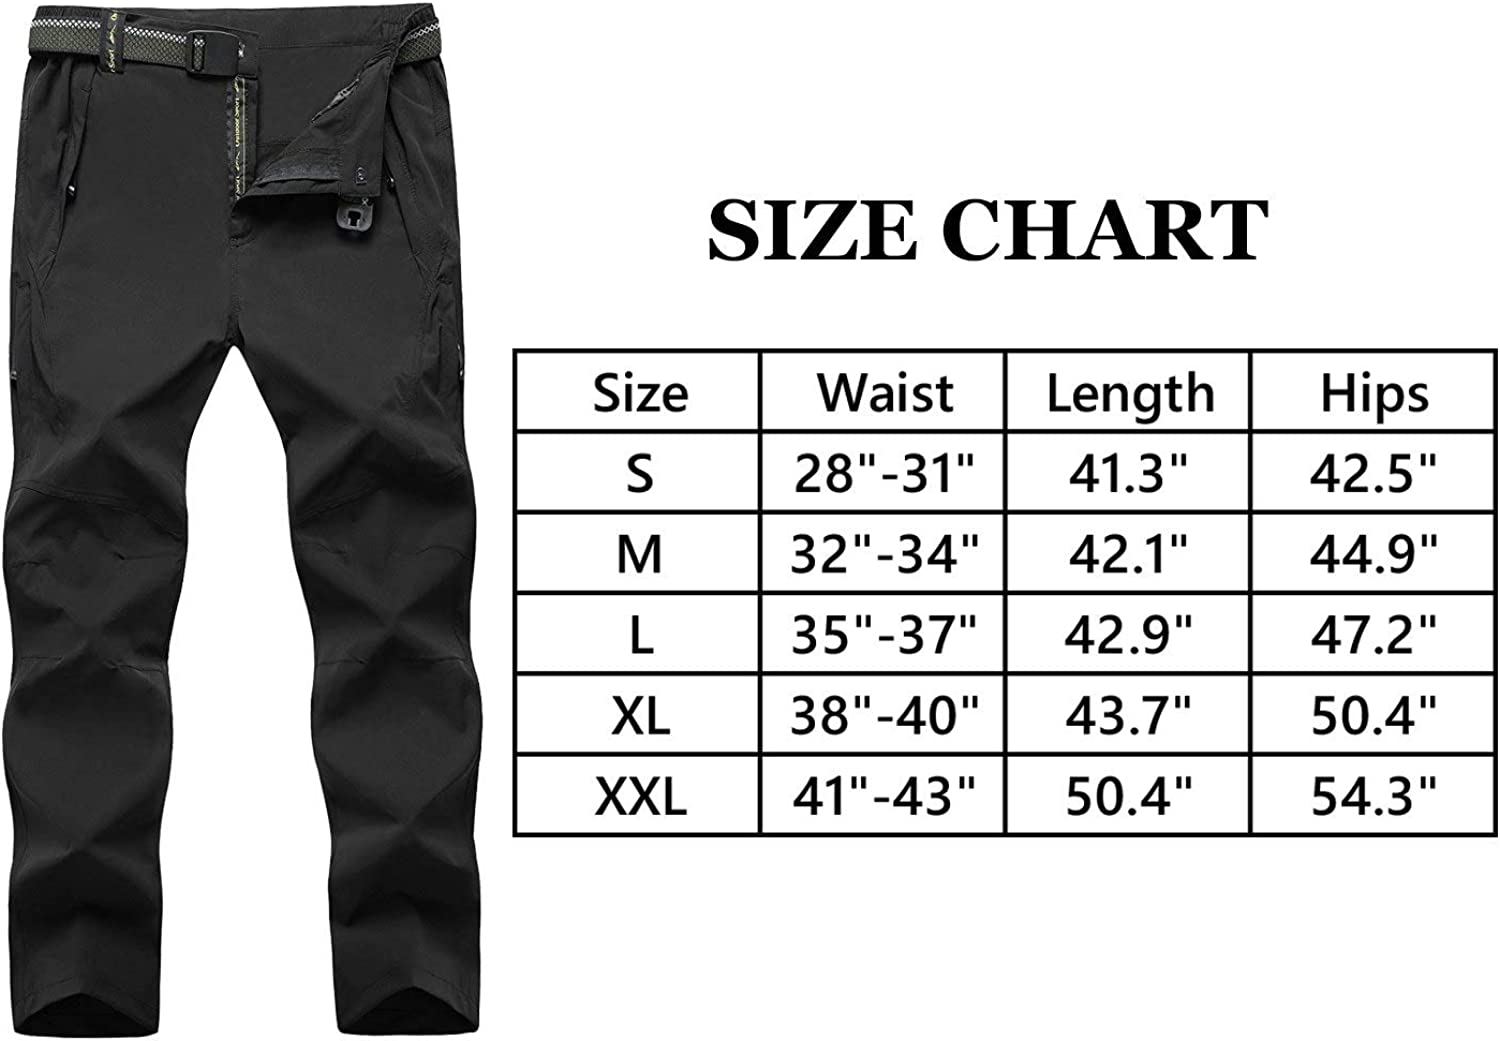 Rdruko Mens Outdoor Lightweight Waterproof Hiking Skiing Climbing Tactical Cargo Fleece Lined Pants with Belt